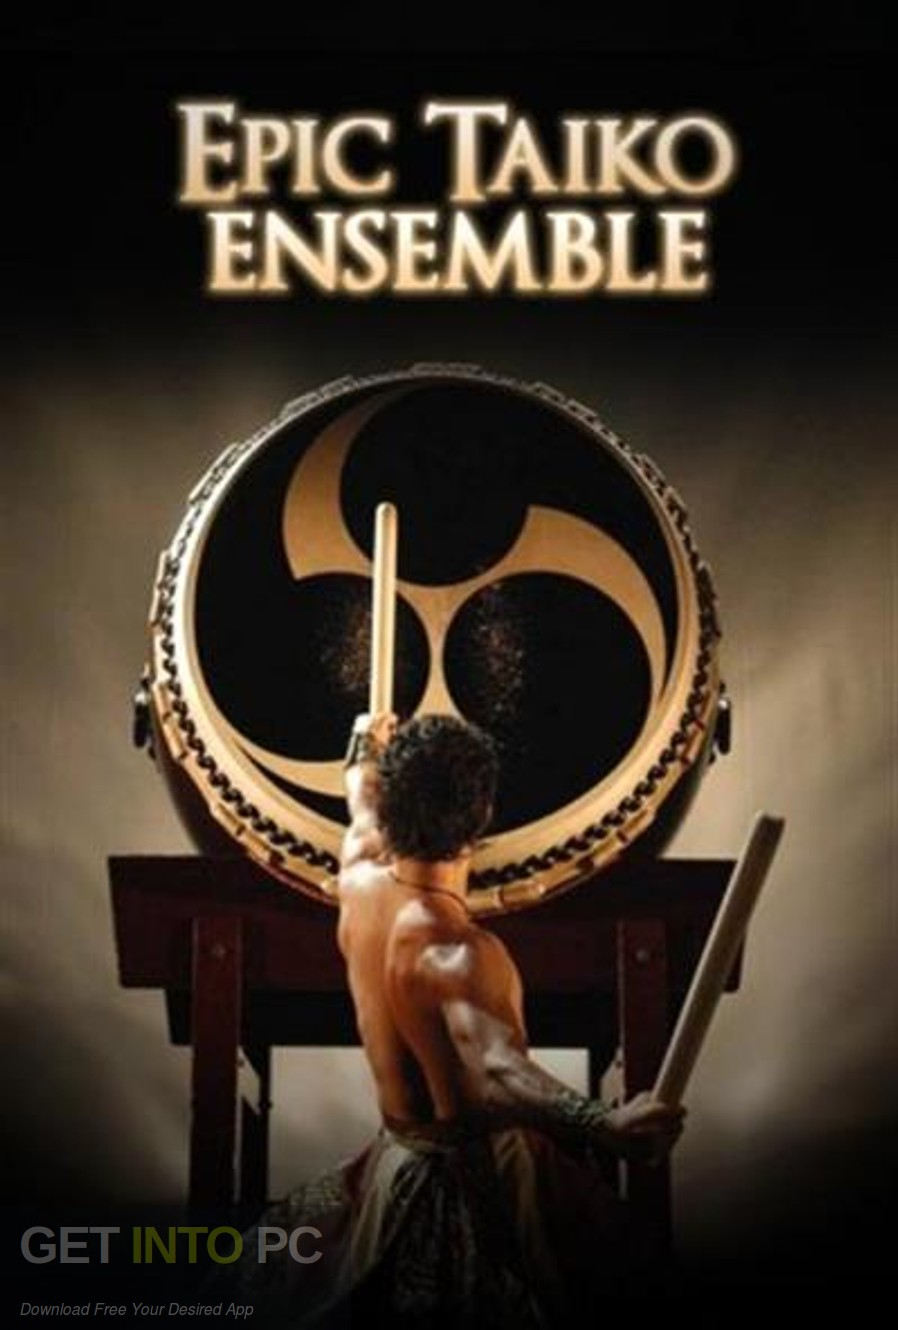 8Dio - Epic Taiko Ensemble (KONTAKT) Free Download